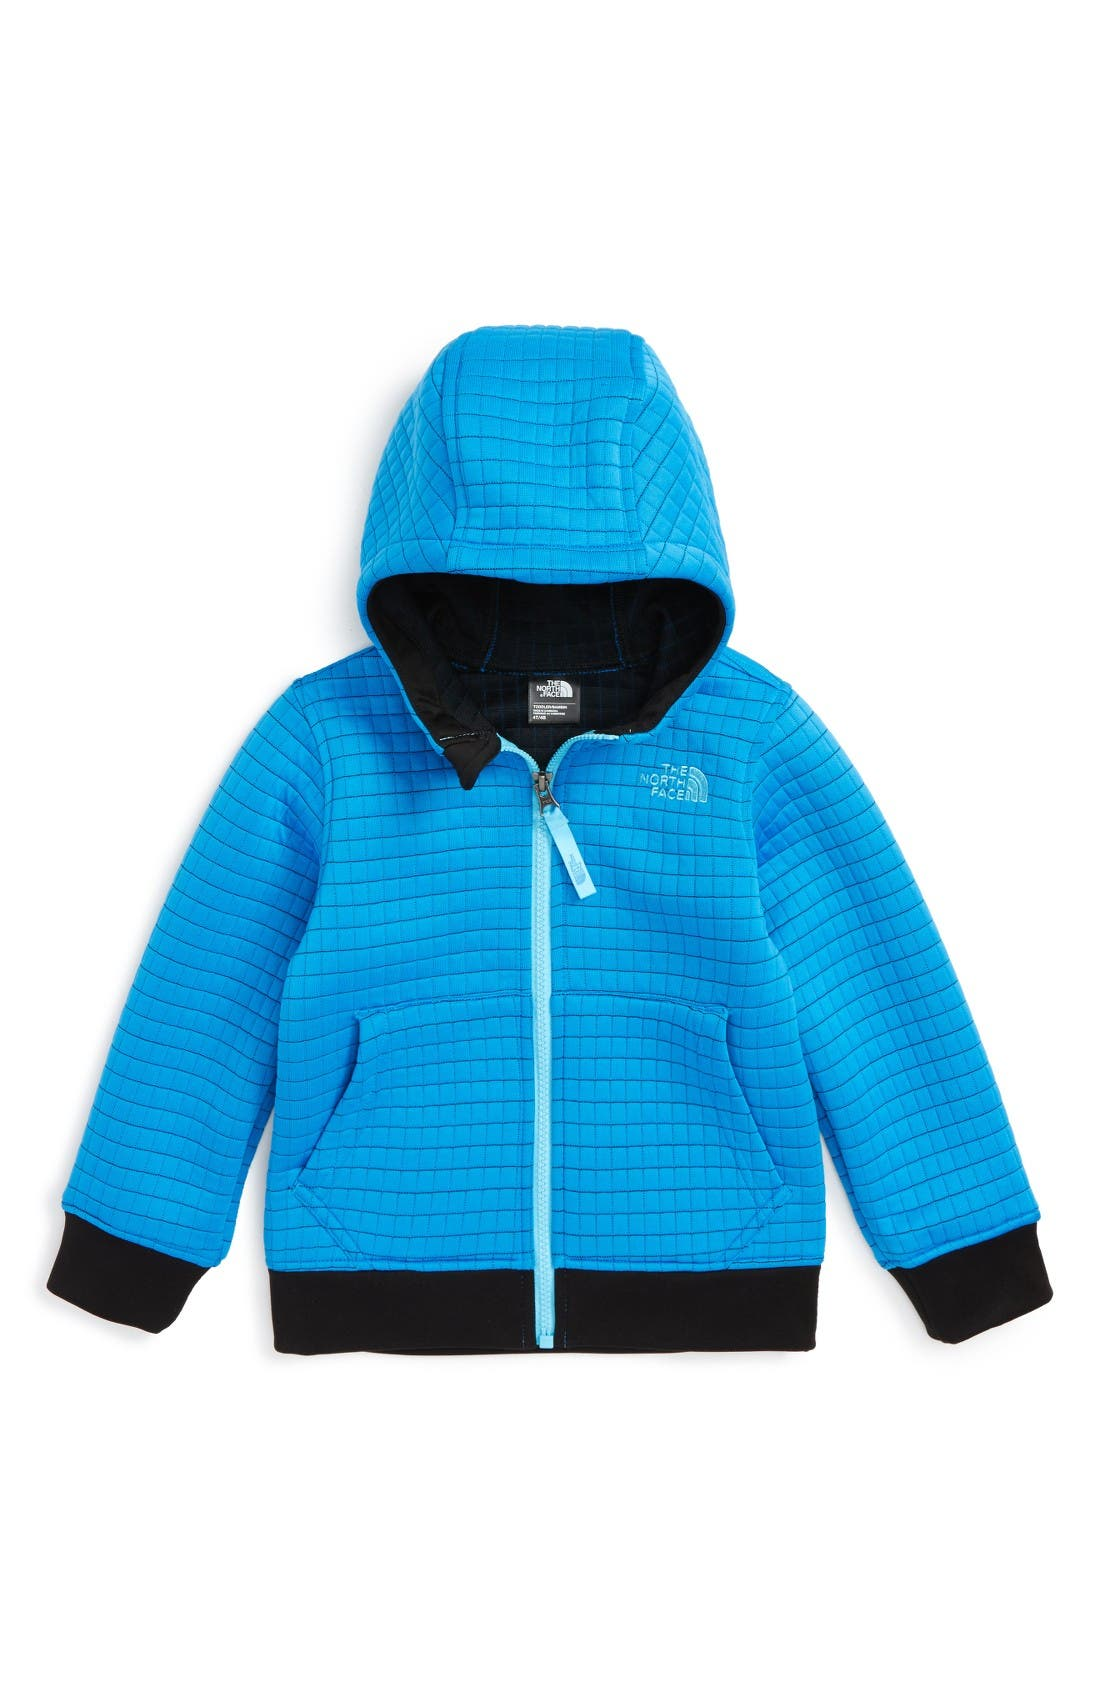 THE NORTH FACE Griddy Hoodie